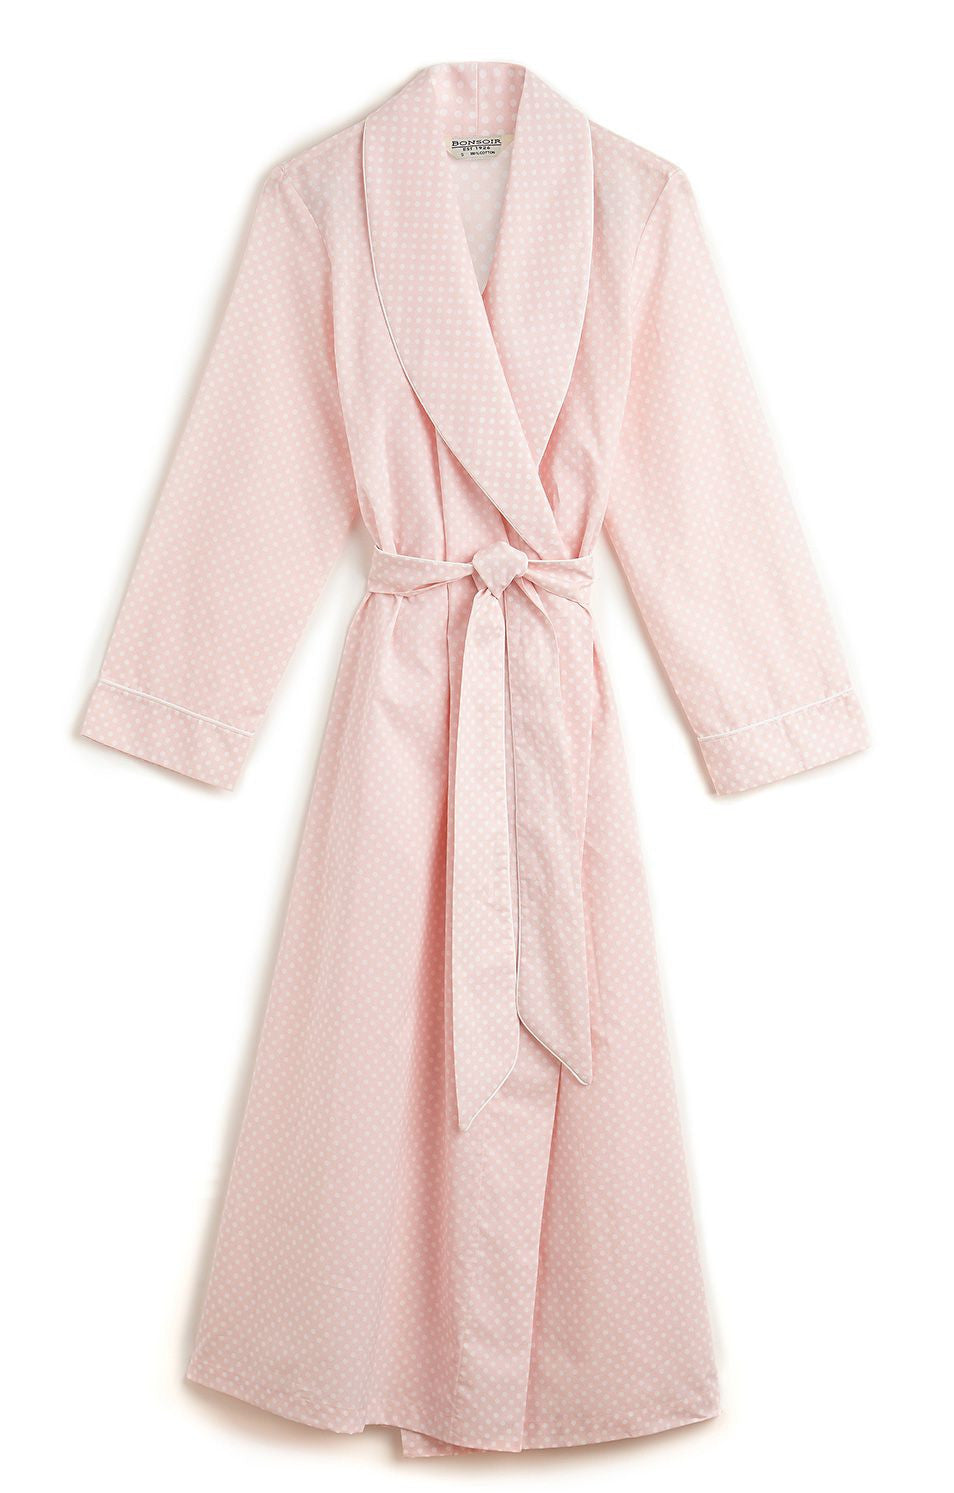 CLASSIC COTTON GOWN - PINK POLKA DOT